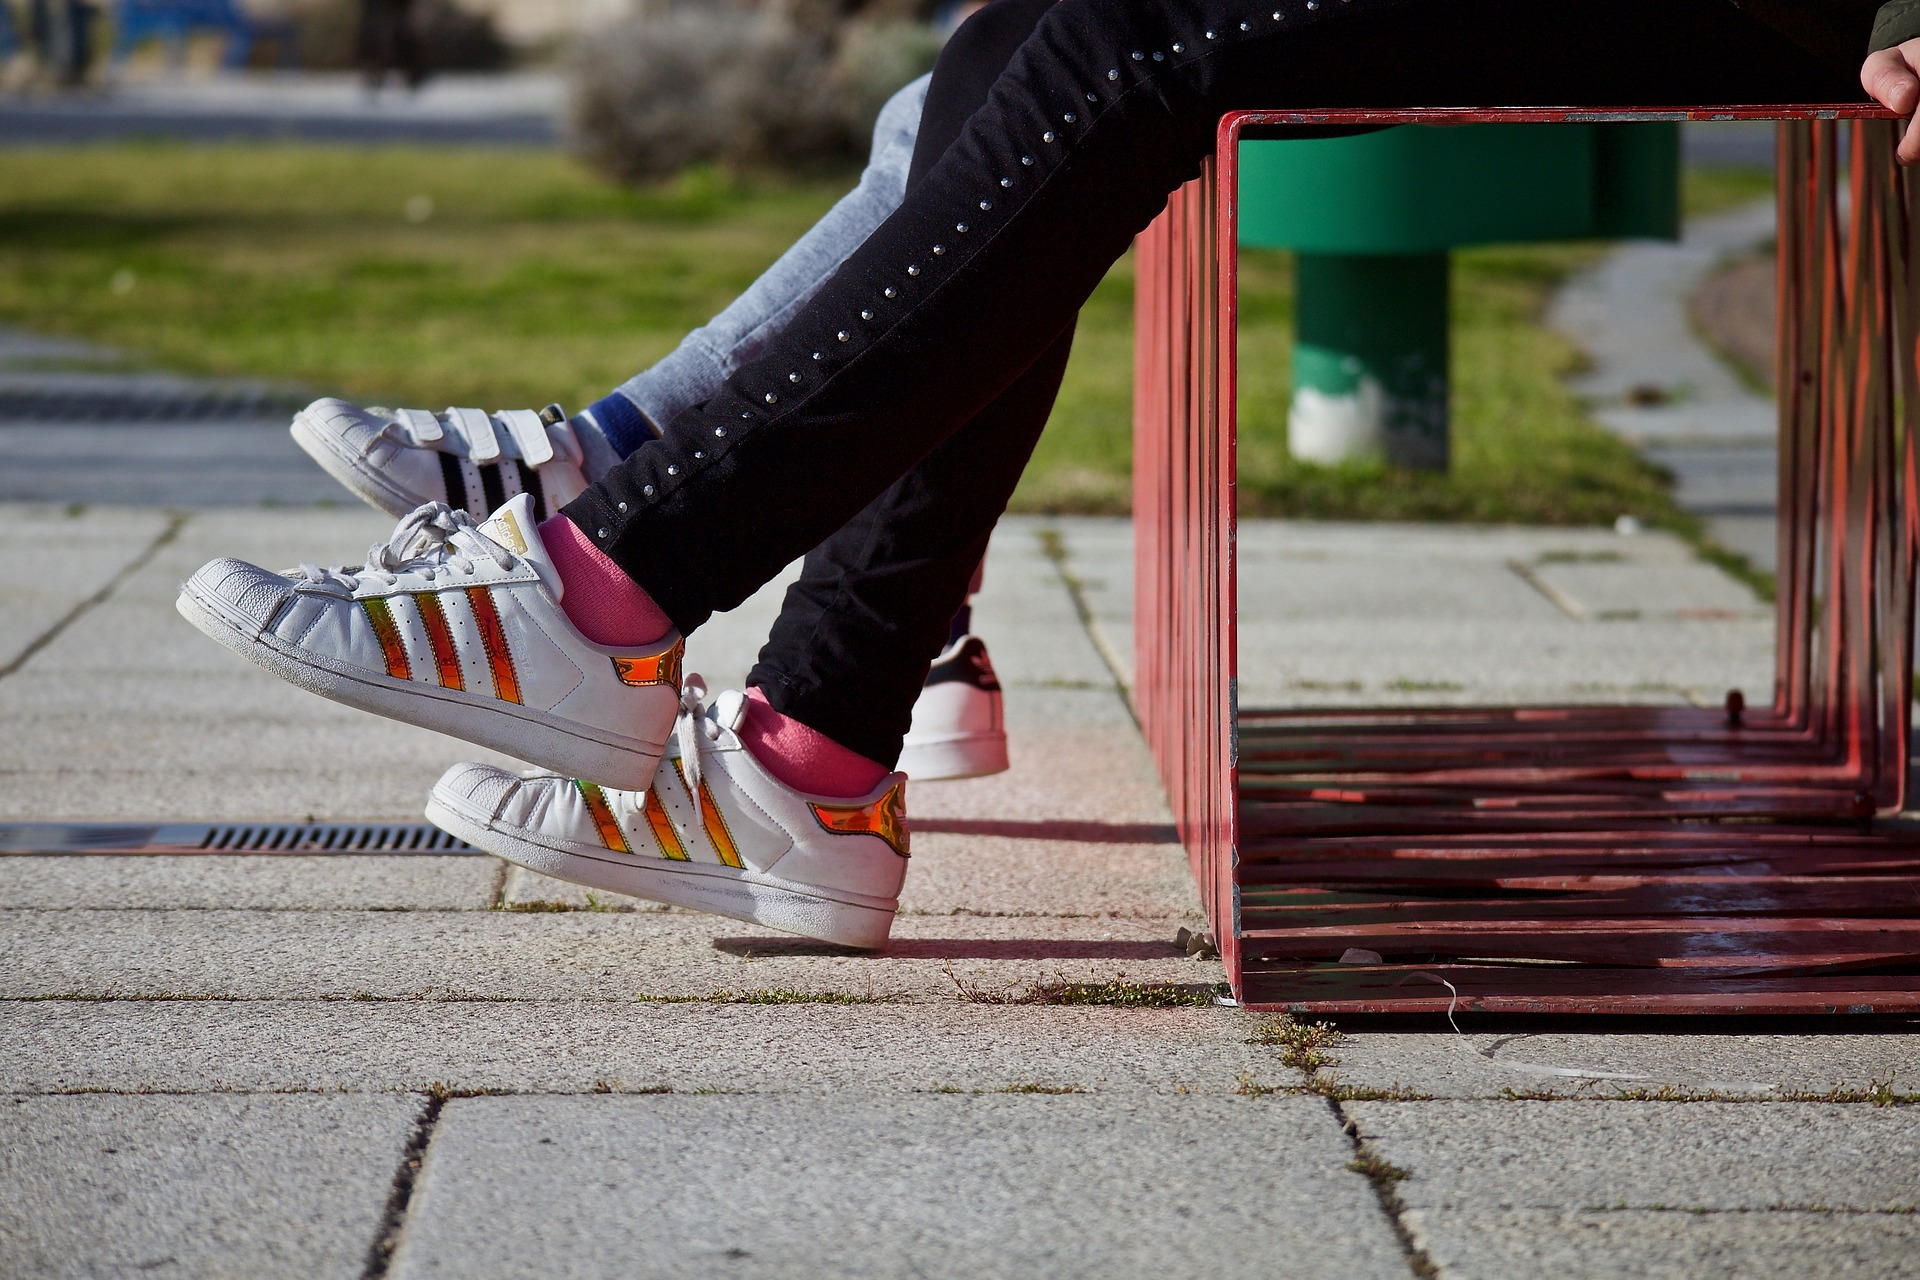 Image of two people sitting on a bench from the waist down with jeans and sneakers on